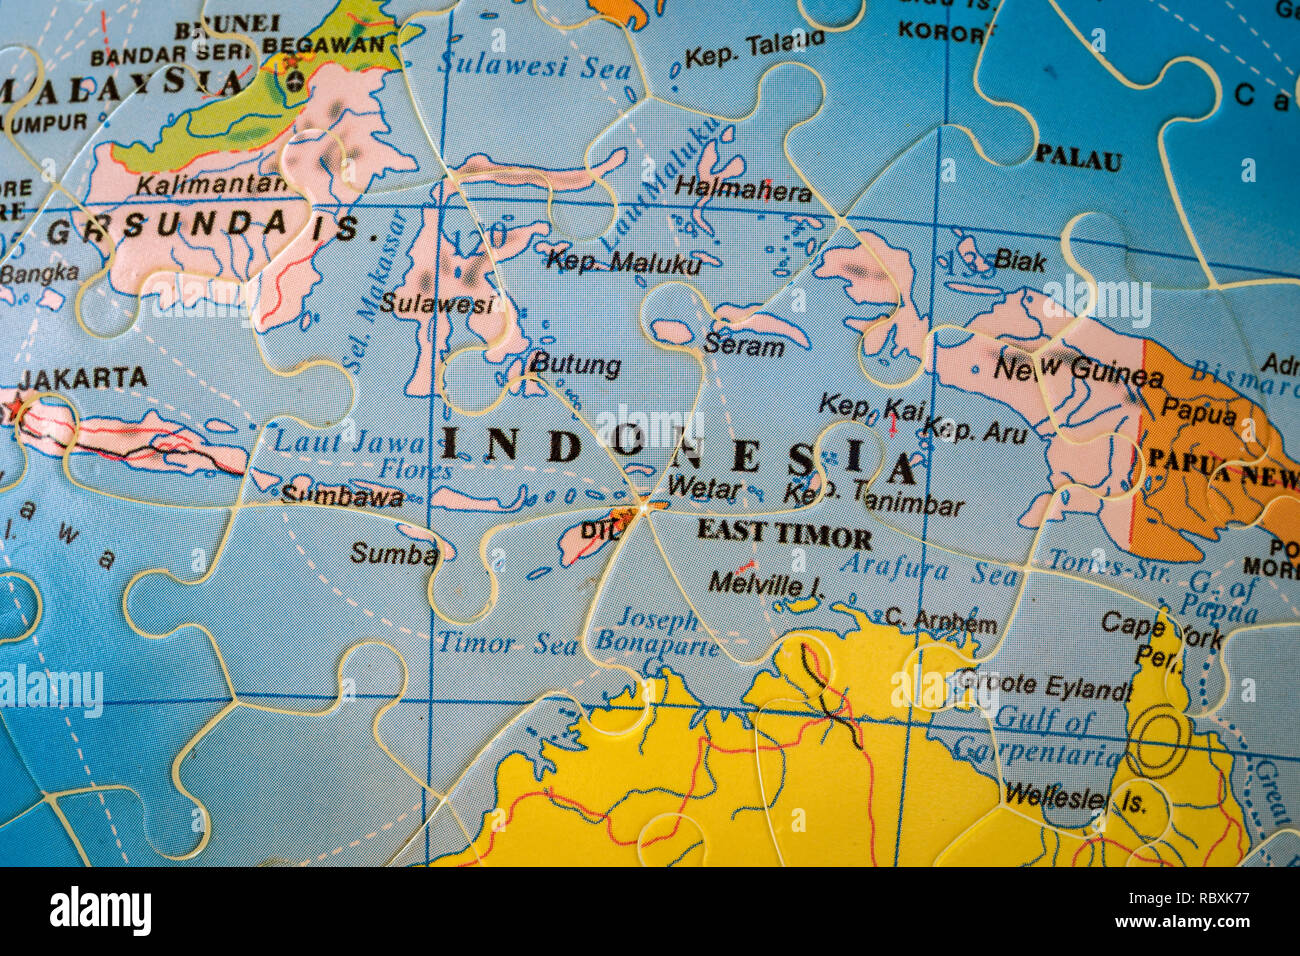 Indonesien Karte.Map Of Indonesia Stockfotos Map Of Indonesia Bilder Seite 2 Alamy